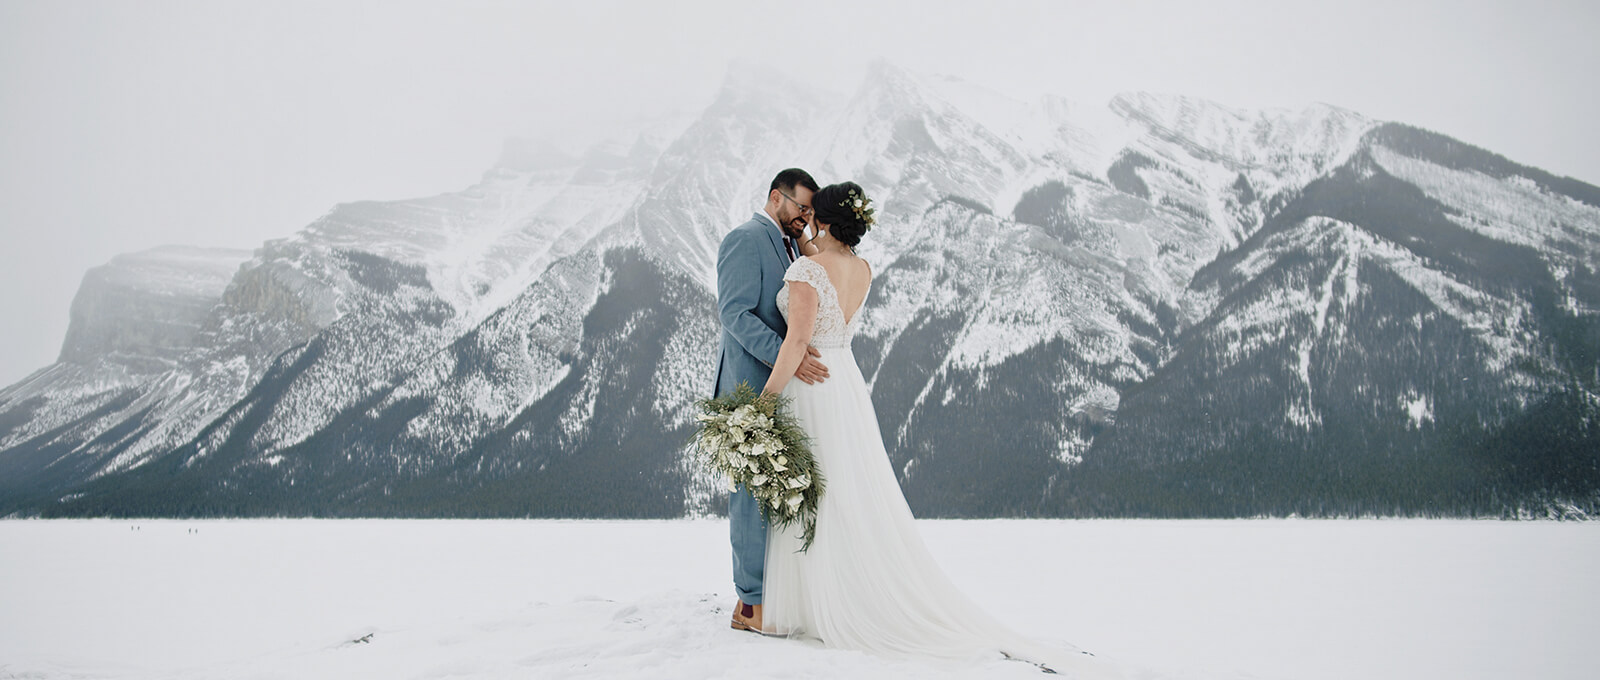 Amy and Dan's intimate Banff elopement film